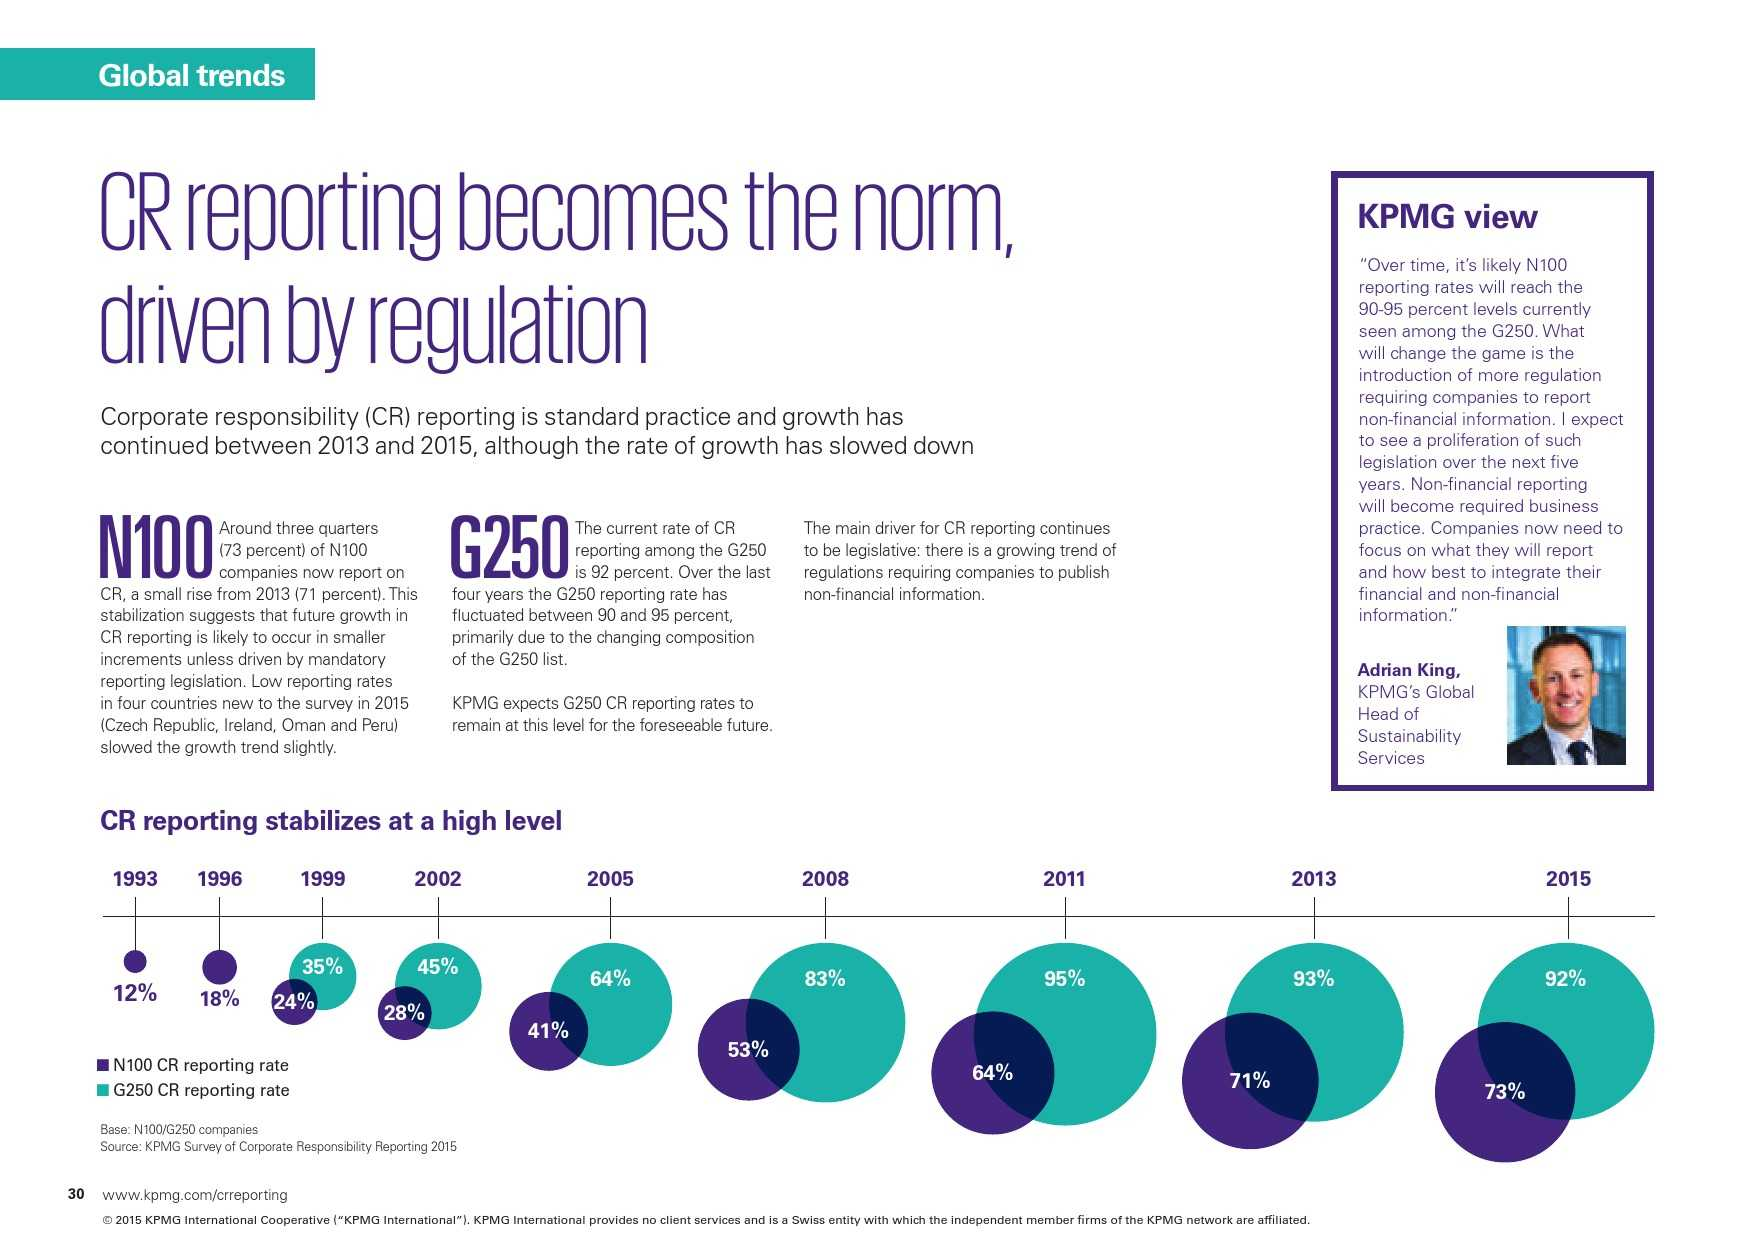 kpmg-international-survey-of-corporate-responsibility-reporting-2015_000030